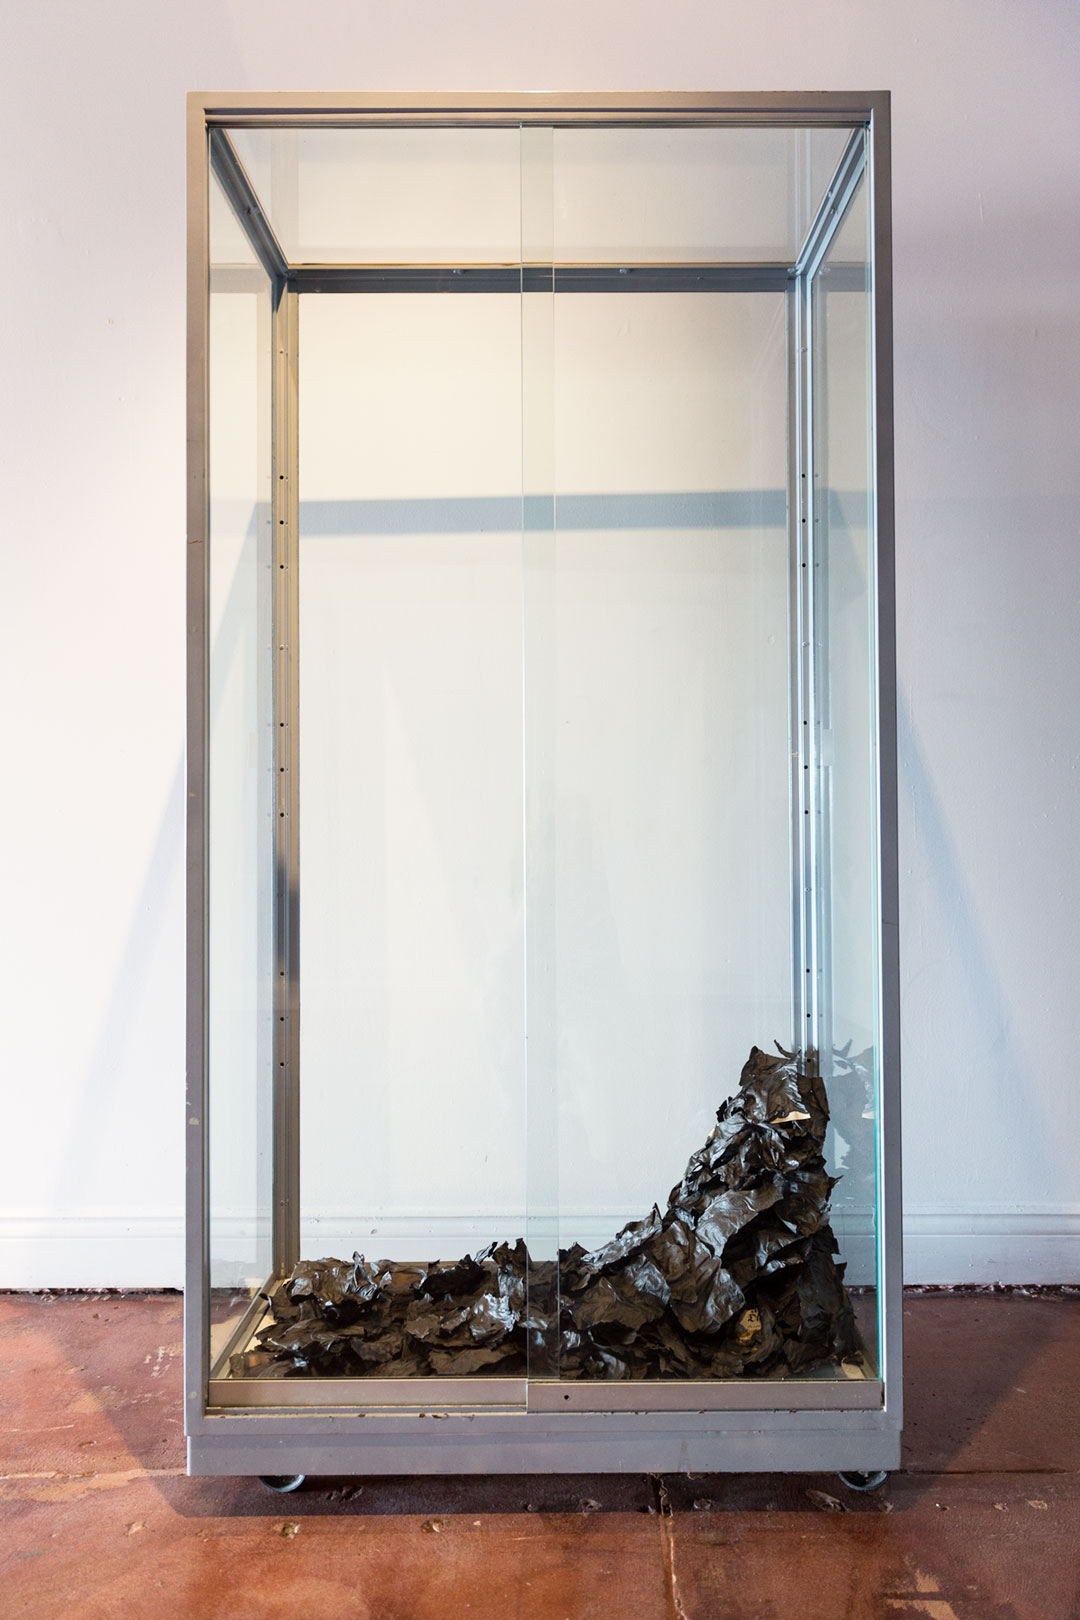 <b>Contested Biography II (in memory of the lost) 2017</b><br /> installation view, POP Gallery<br /> Burnt 1979 edition of Amalie Dietrich: Ein Leben by Charitas Bischoff, glass display cabinet, speaker, digital audio track.